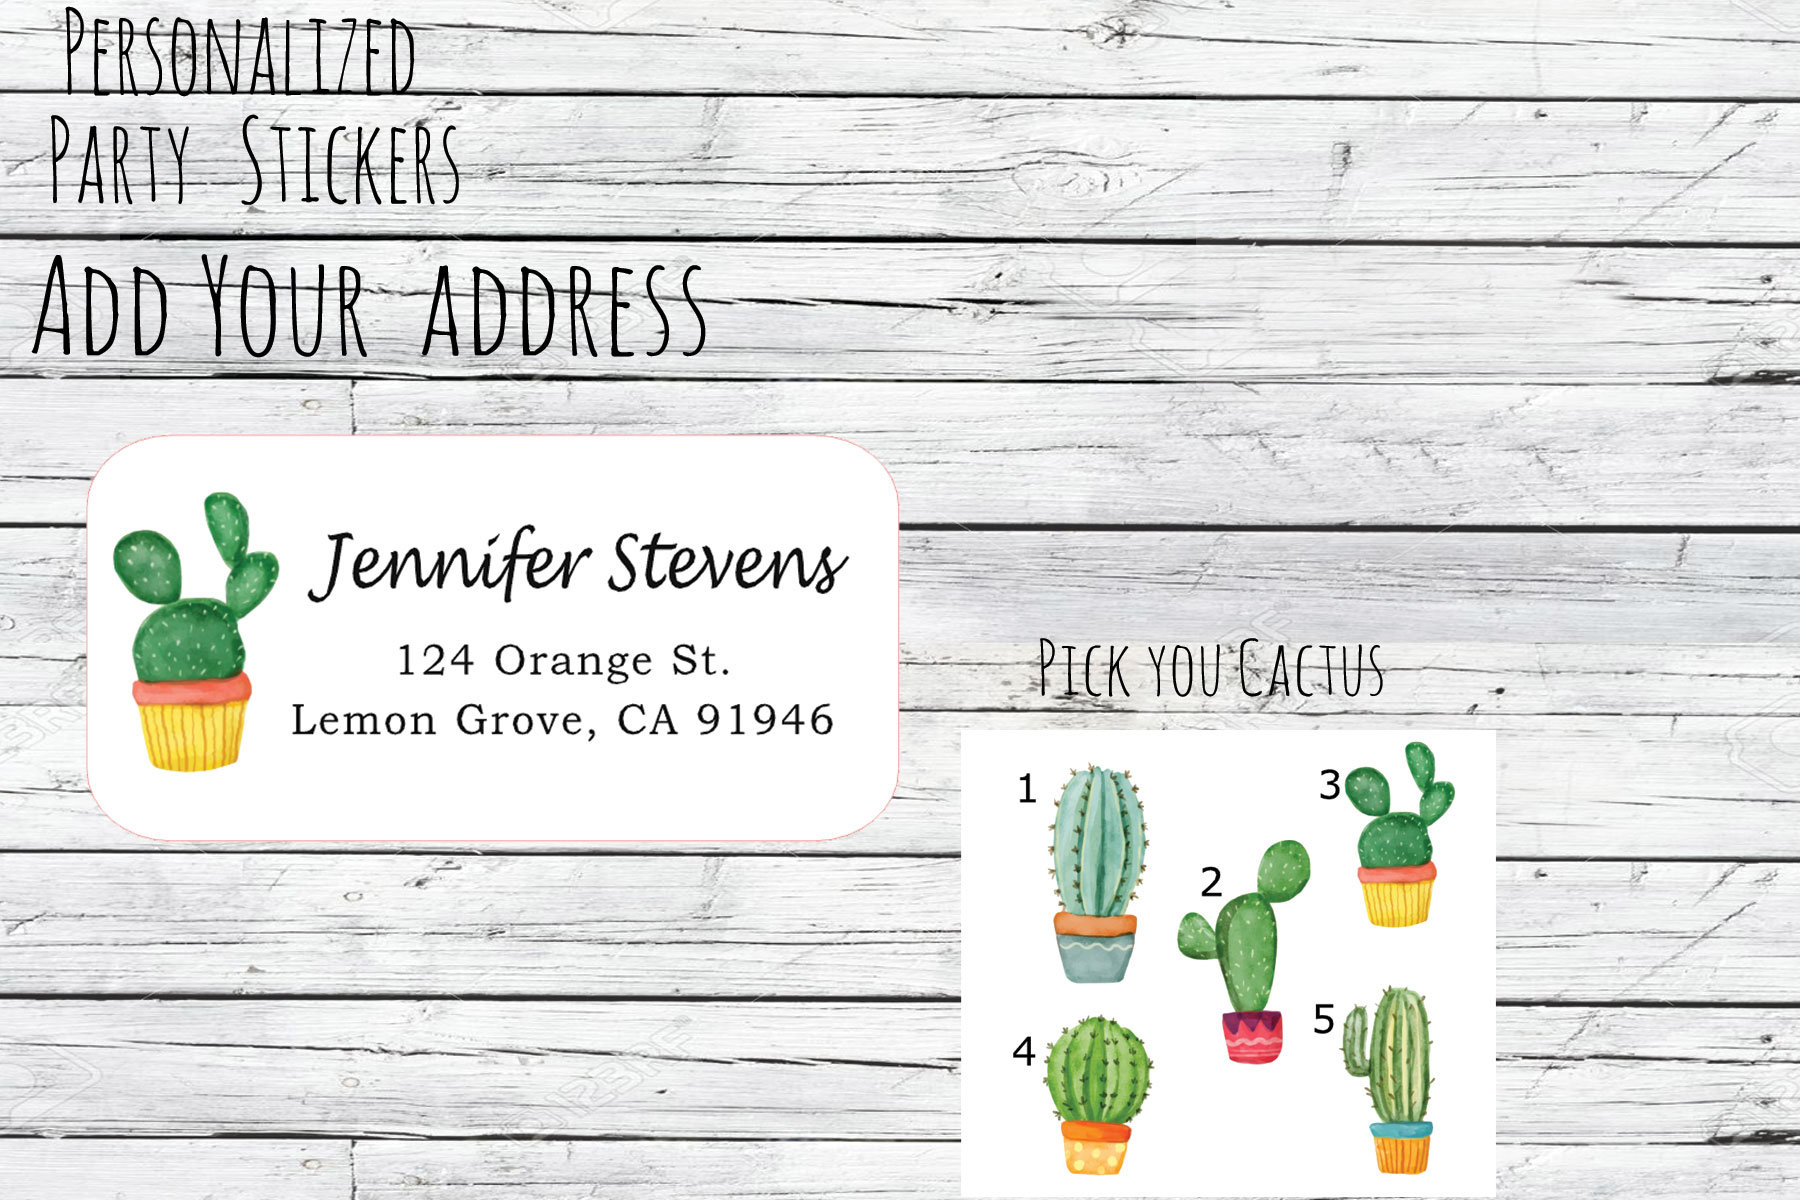 16 return address label designs and examples psd ai